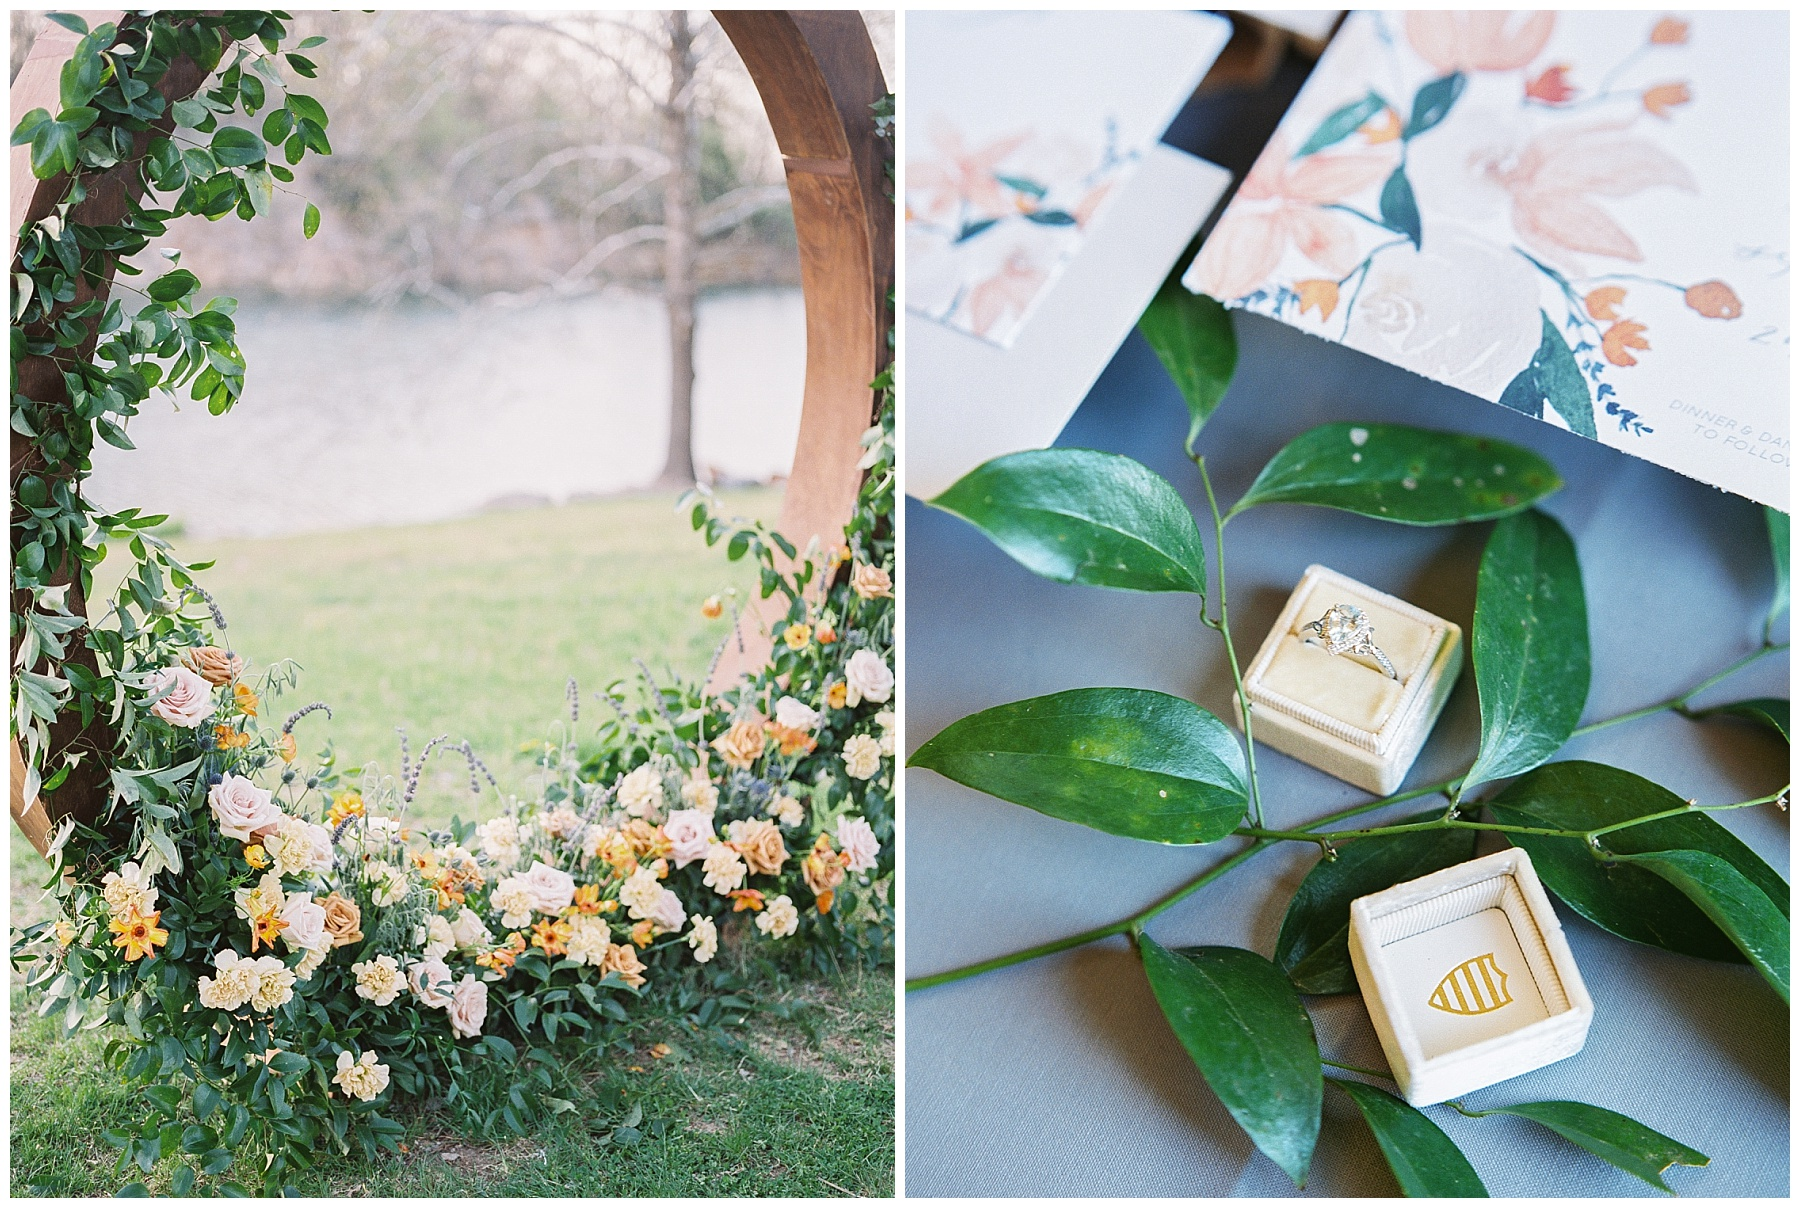 Intimate Spanish and French Inspired Destination Wedding with Lakeside Dinner Party at Dusk at Wildcliff by Kelsi Kliethermes Photography Best Missouri and Maui Wedding Photographer_0031.jpg